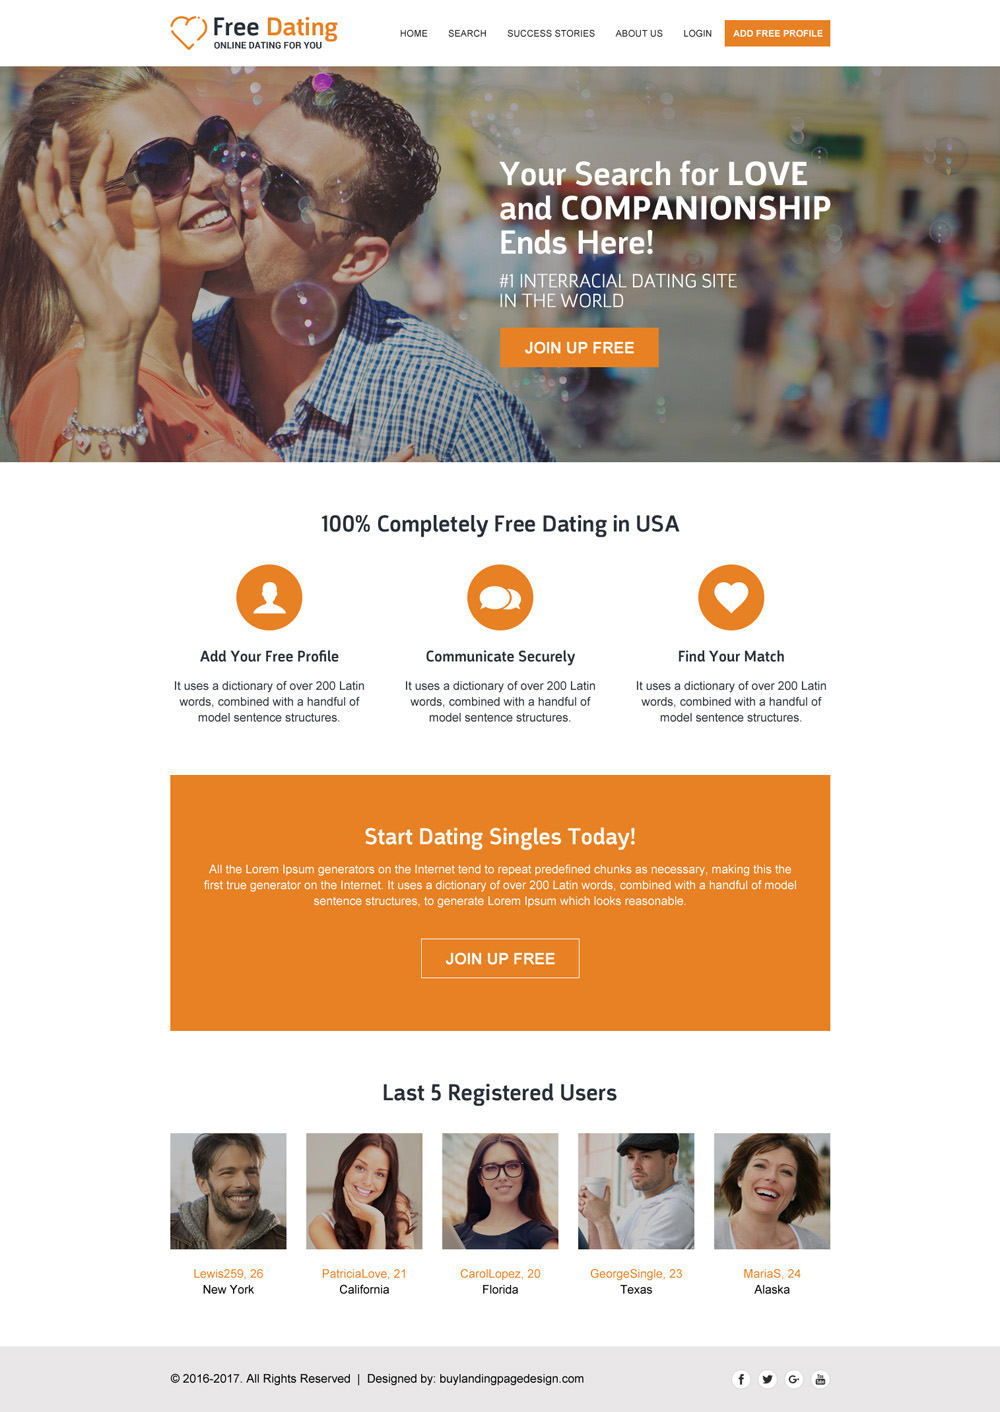 Oasis.com - Free Online Dating - with automated matching and instant messenger communication.